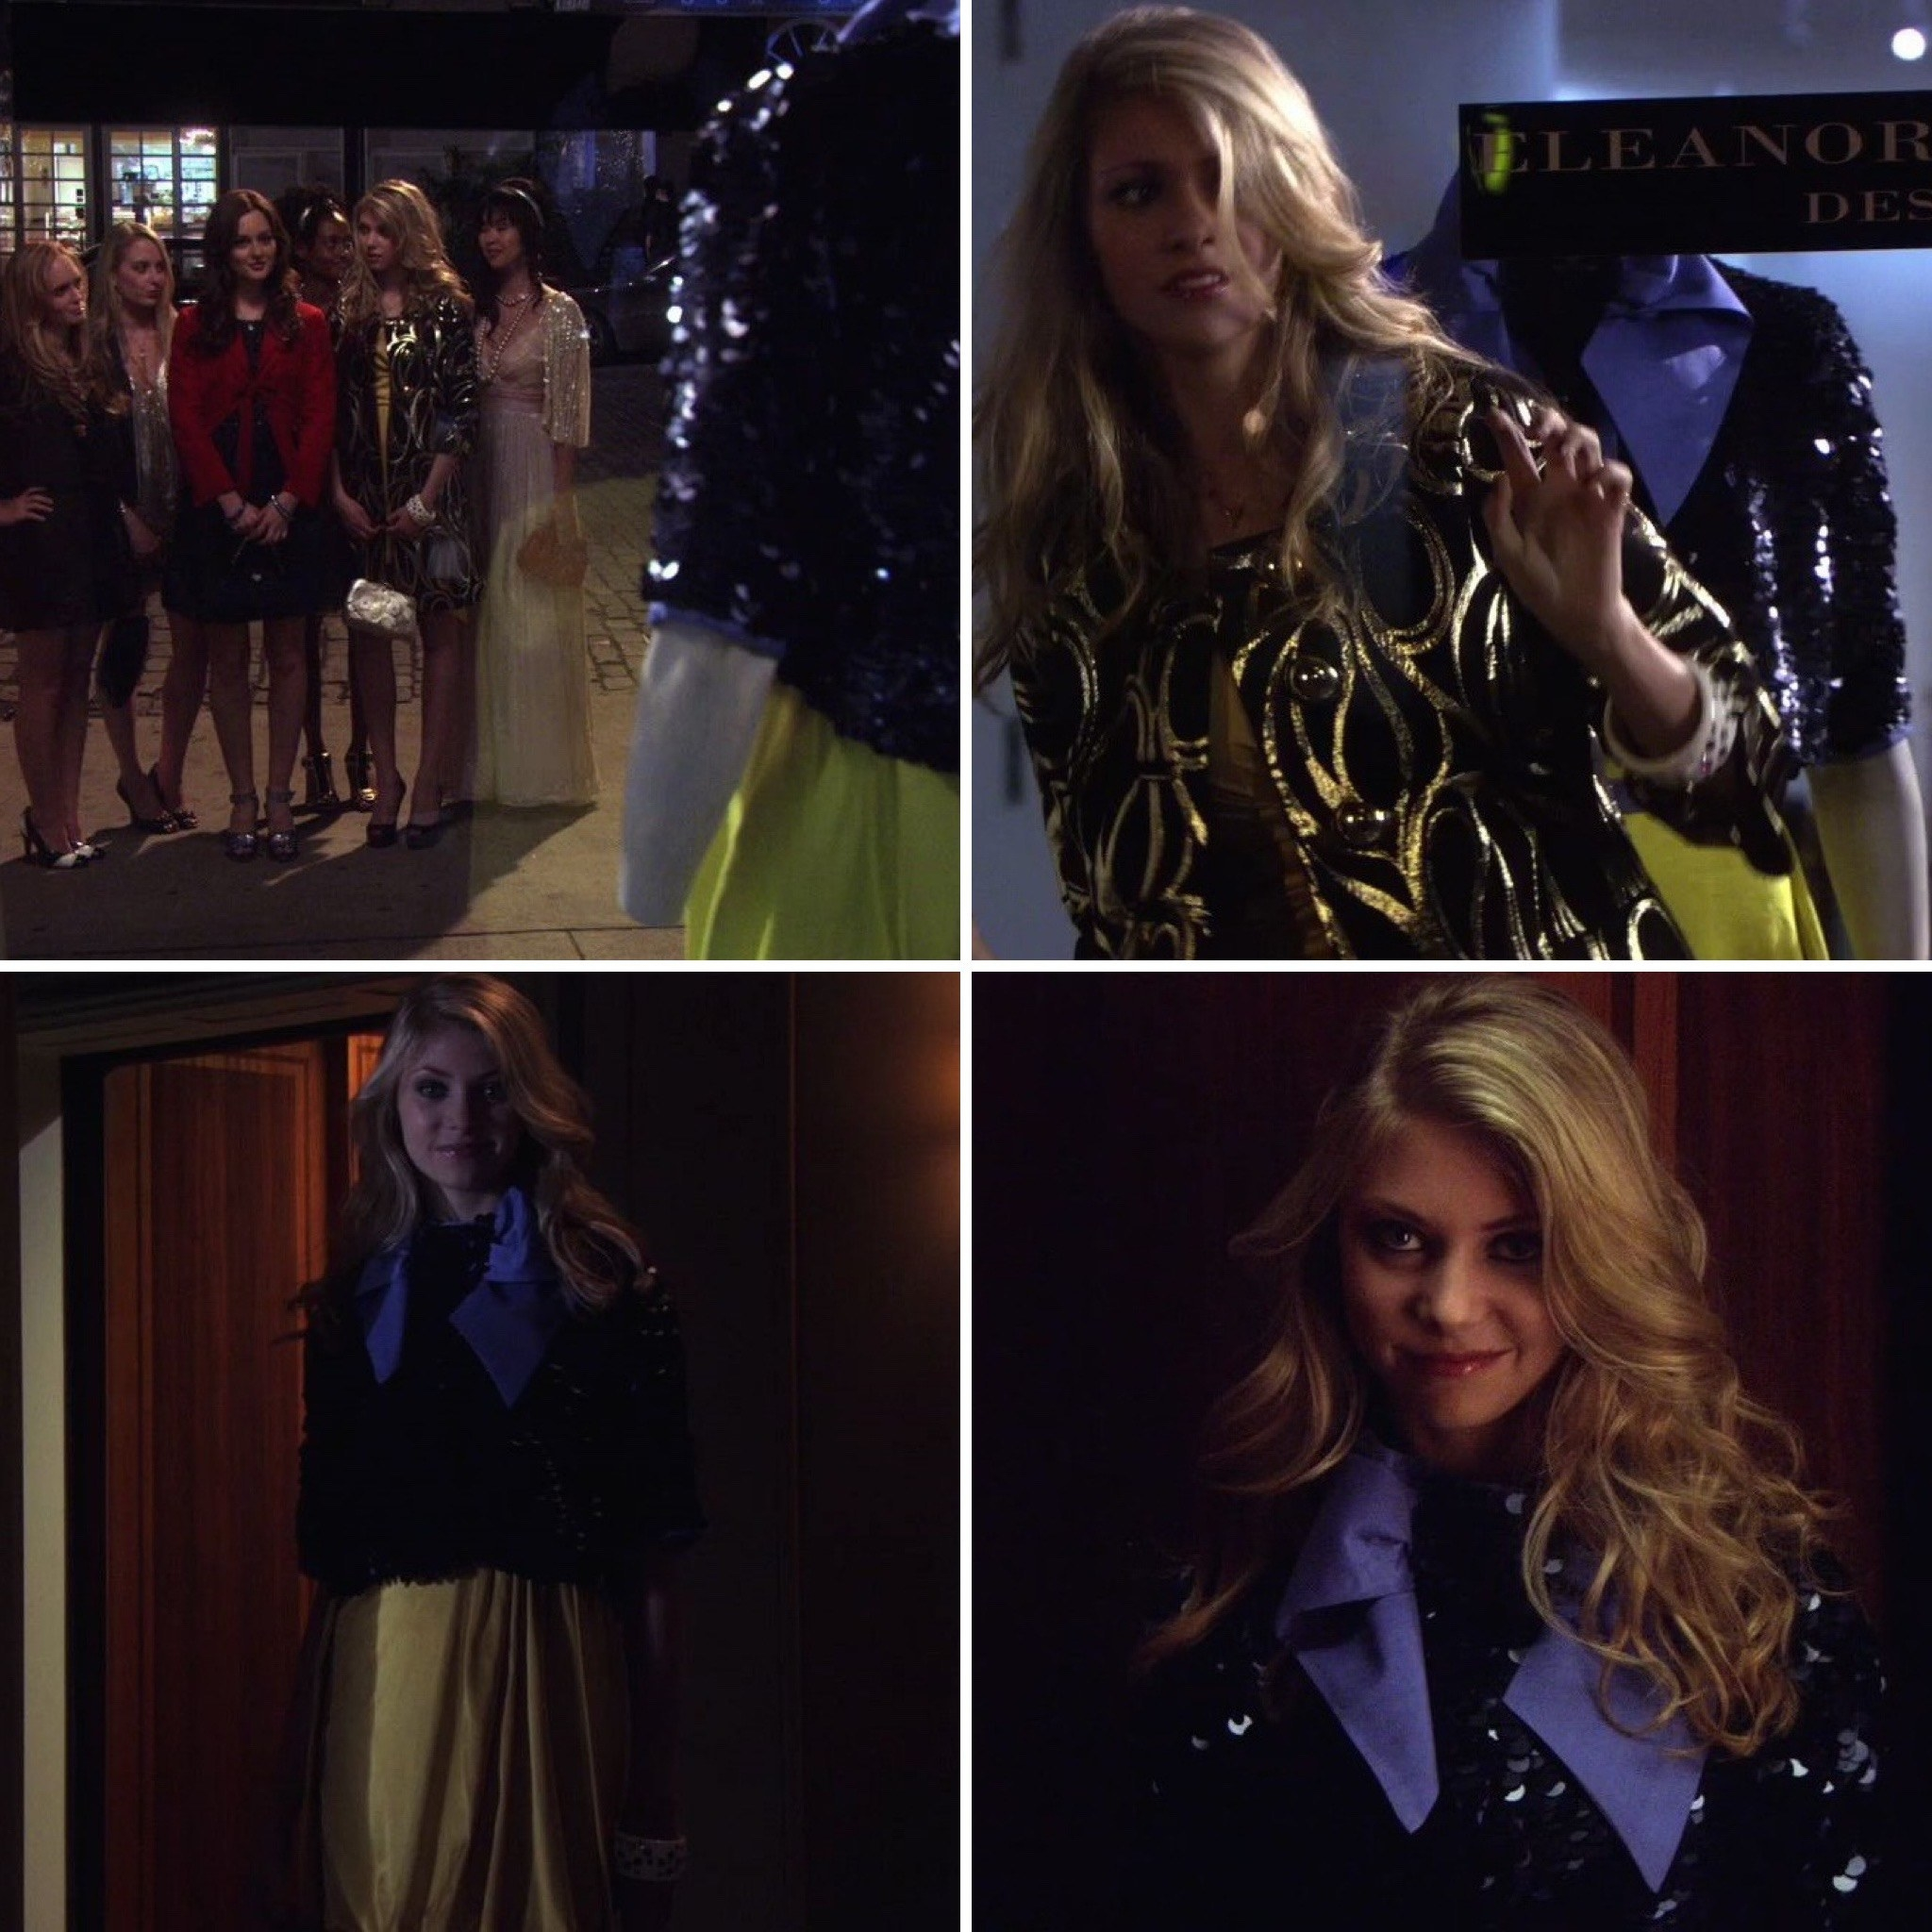 """jenny humphrey walks into a room with blair and her friends to say """"surprise bitch"""""""